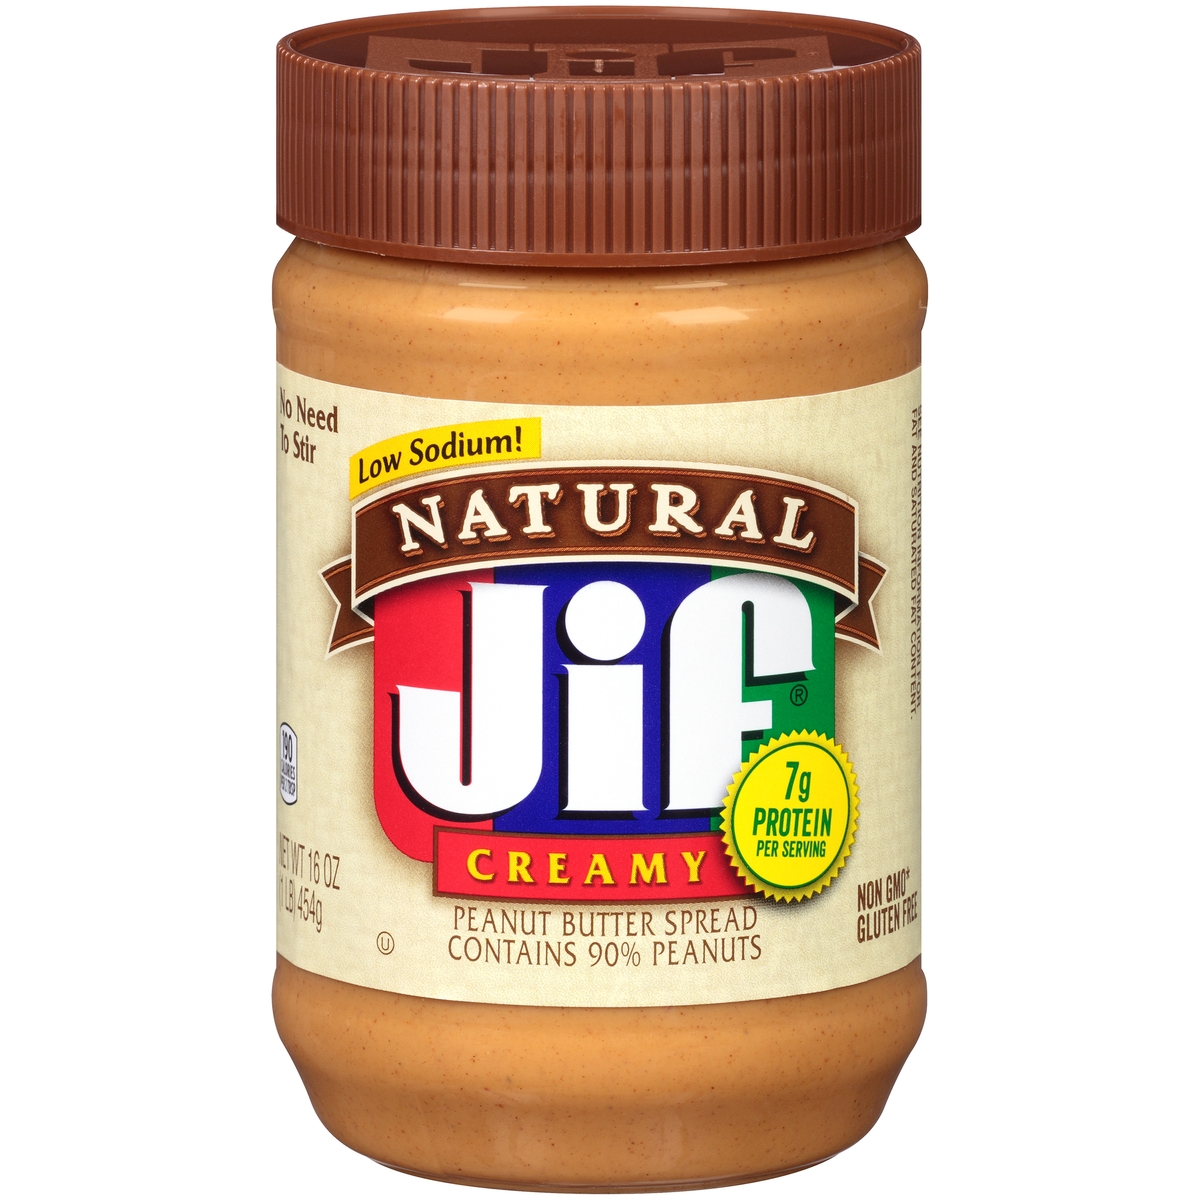 Natural Jif Peanut Butter Spread : Creamy